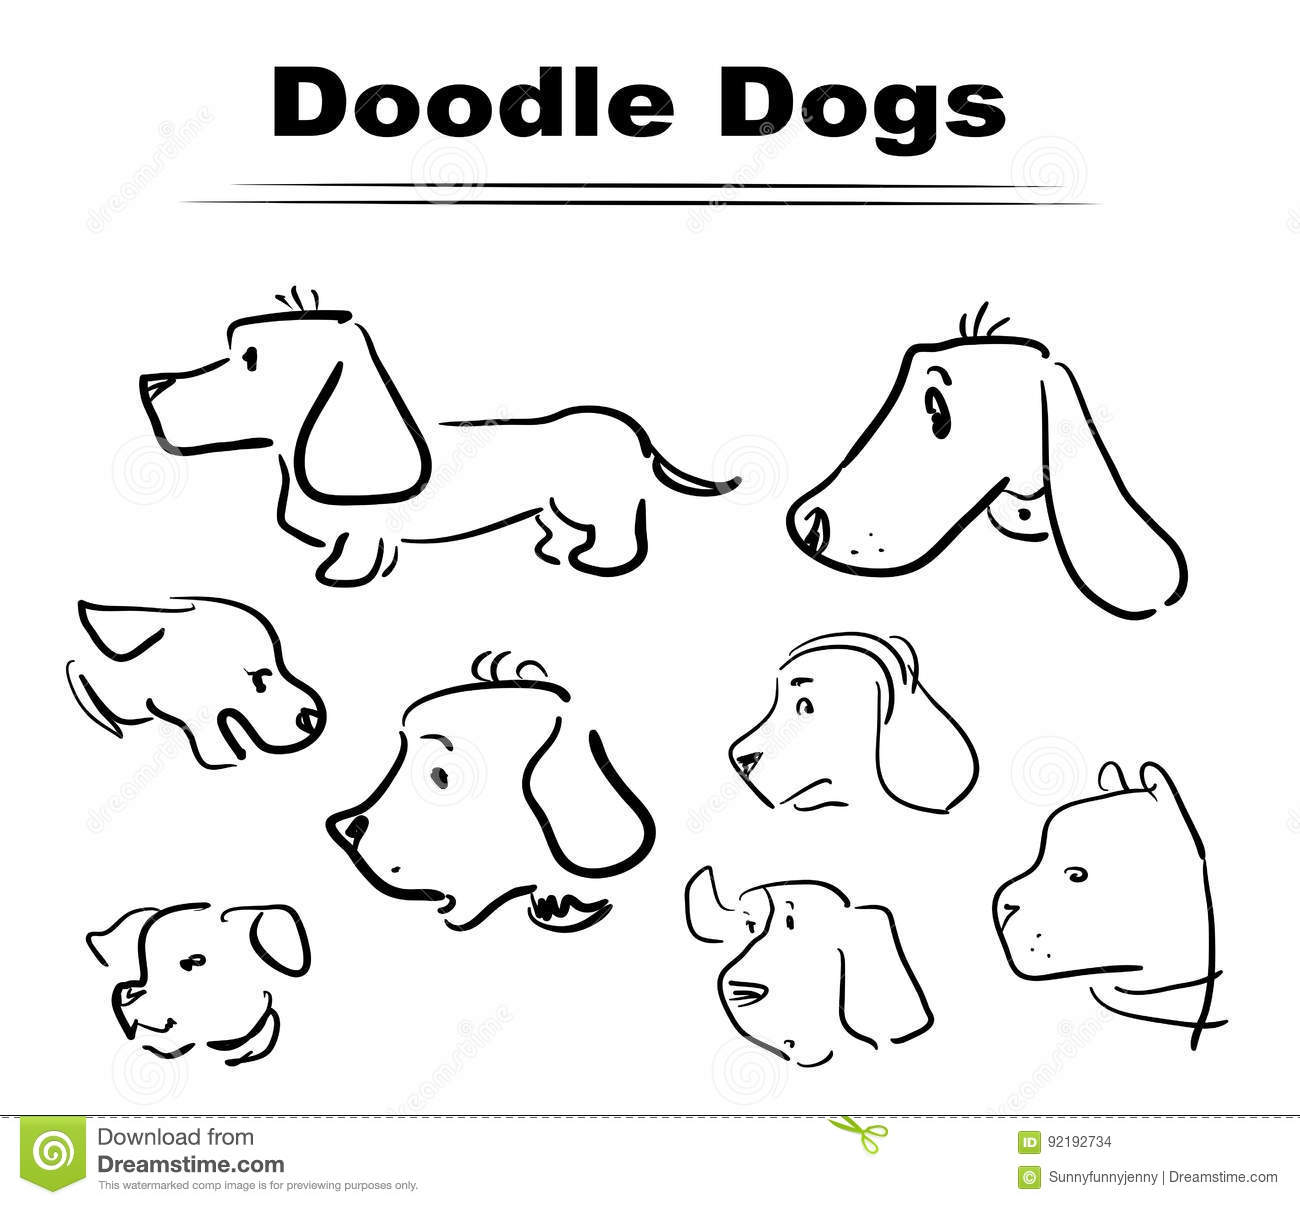 Doodle dog 005 stock vector  Illustration of hand, draw - 92192734